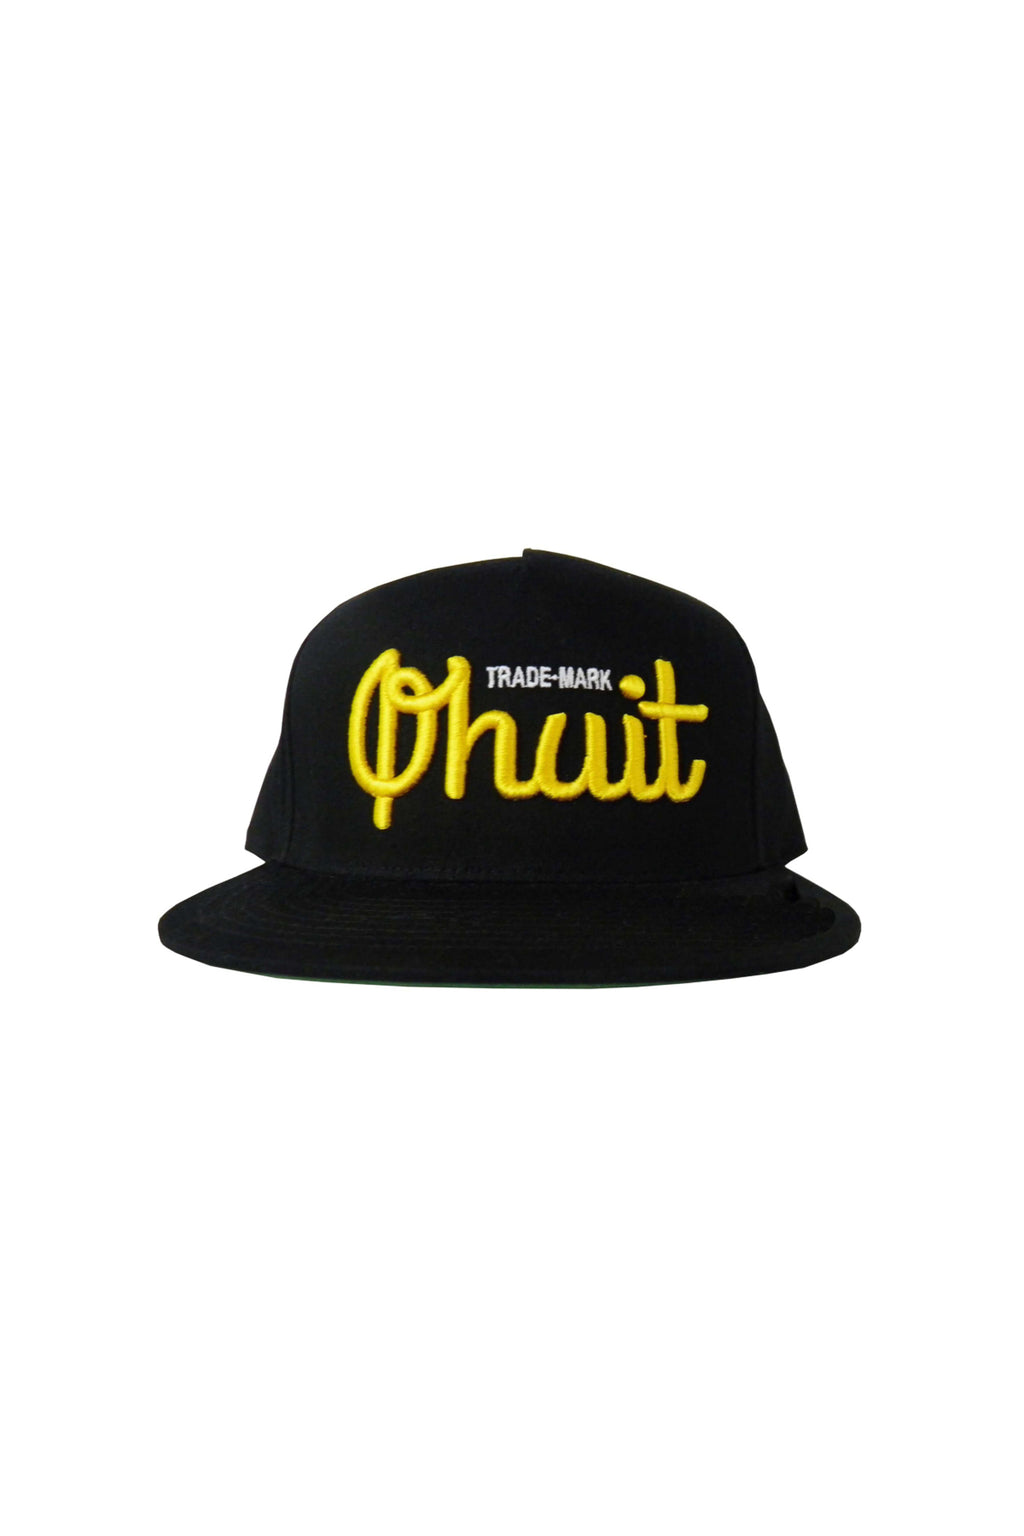 LOGO, snap black & yellow - QHUIT Streetwear